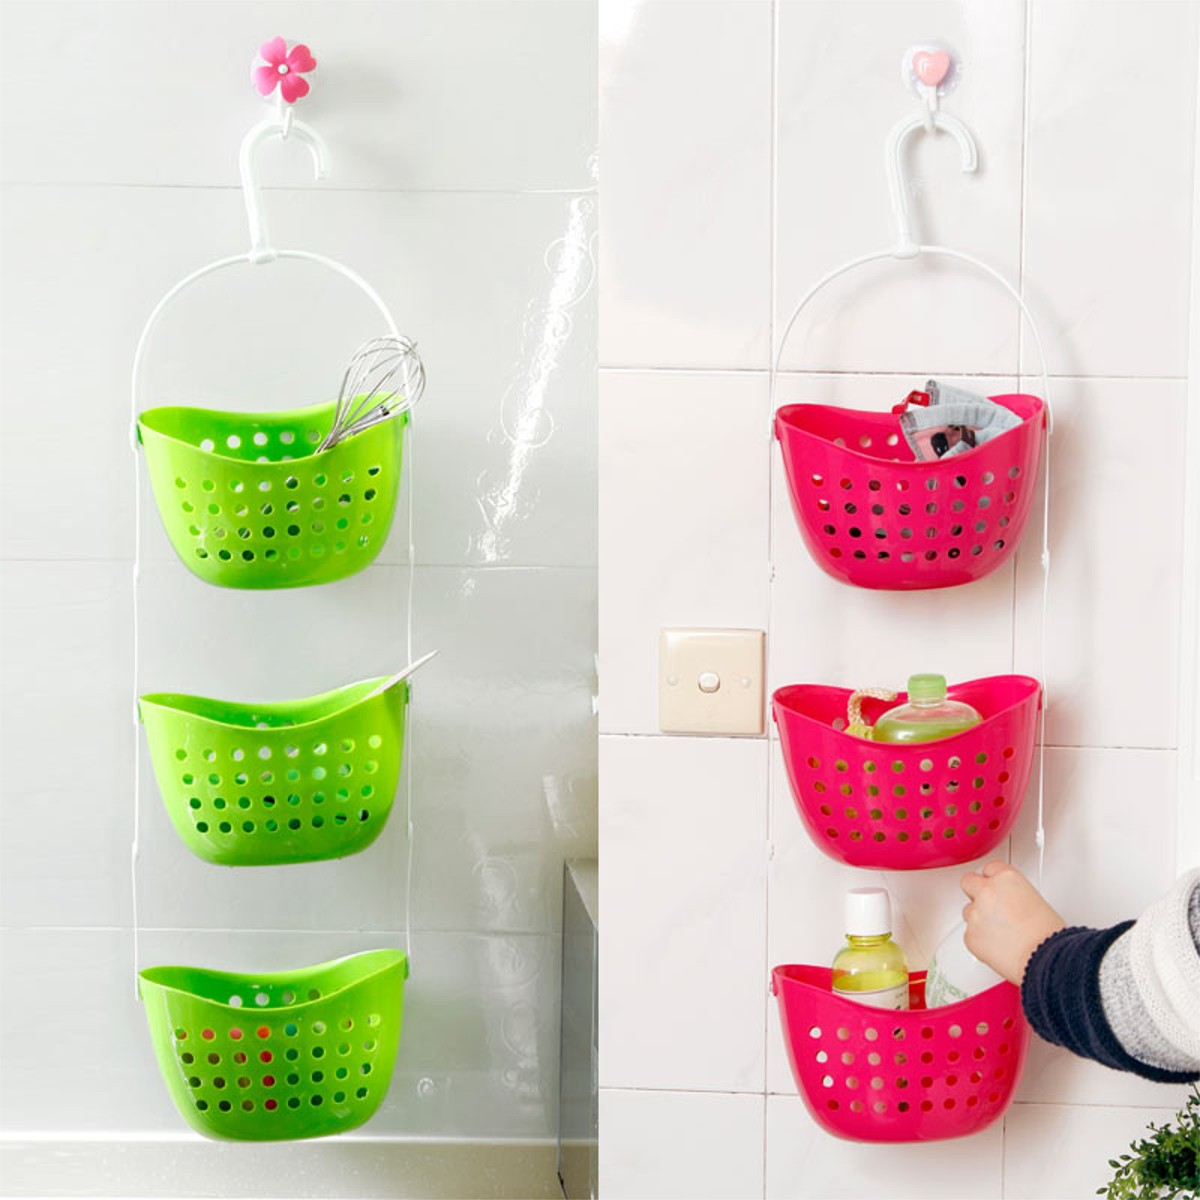 3Pcs/set Shower Bathroom Hanging Basket Mutifunctional Caddy Plastic Rack  Kitchen Organizer Storage Container Space Save In Storage Baskets From Home  ...